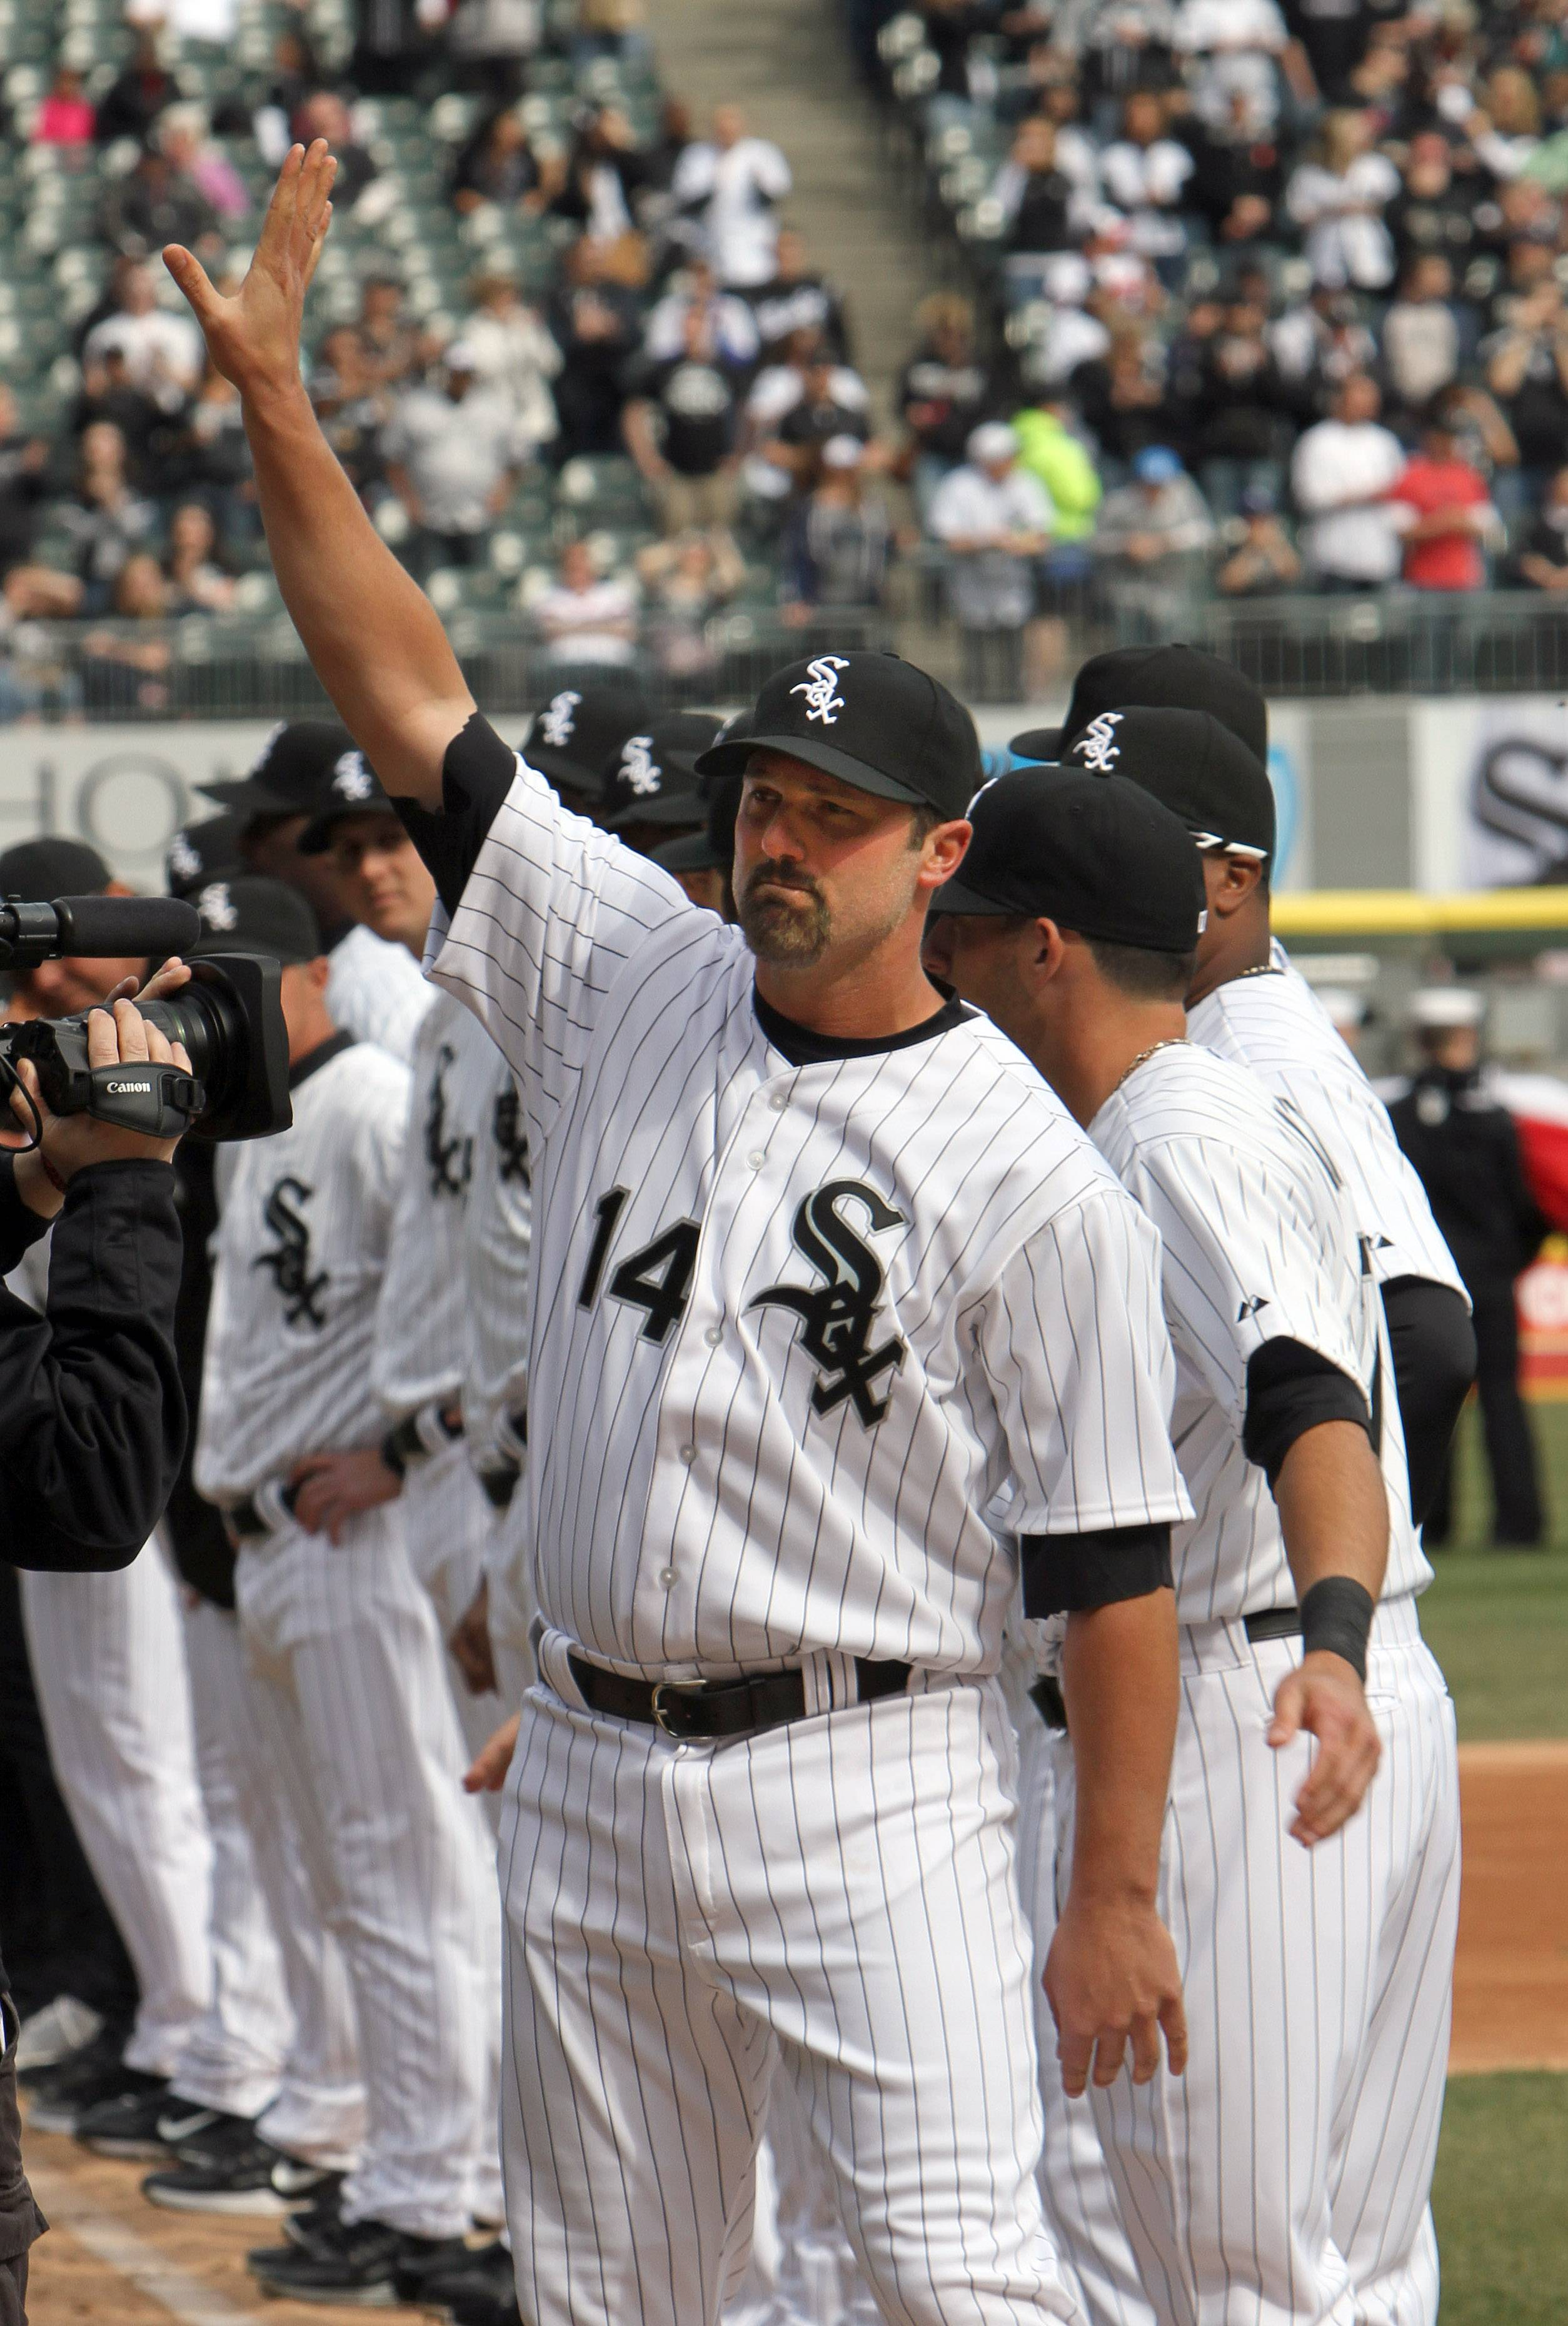 White Sox first baseman Paul Konerko waves to the crowd during Monday's introductions at the White Sox home opener against the Minnesota Twins at U.S. Cellular Field.